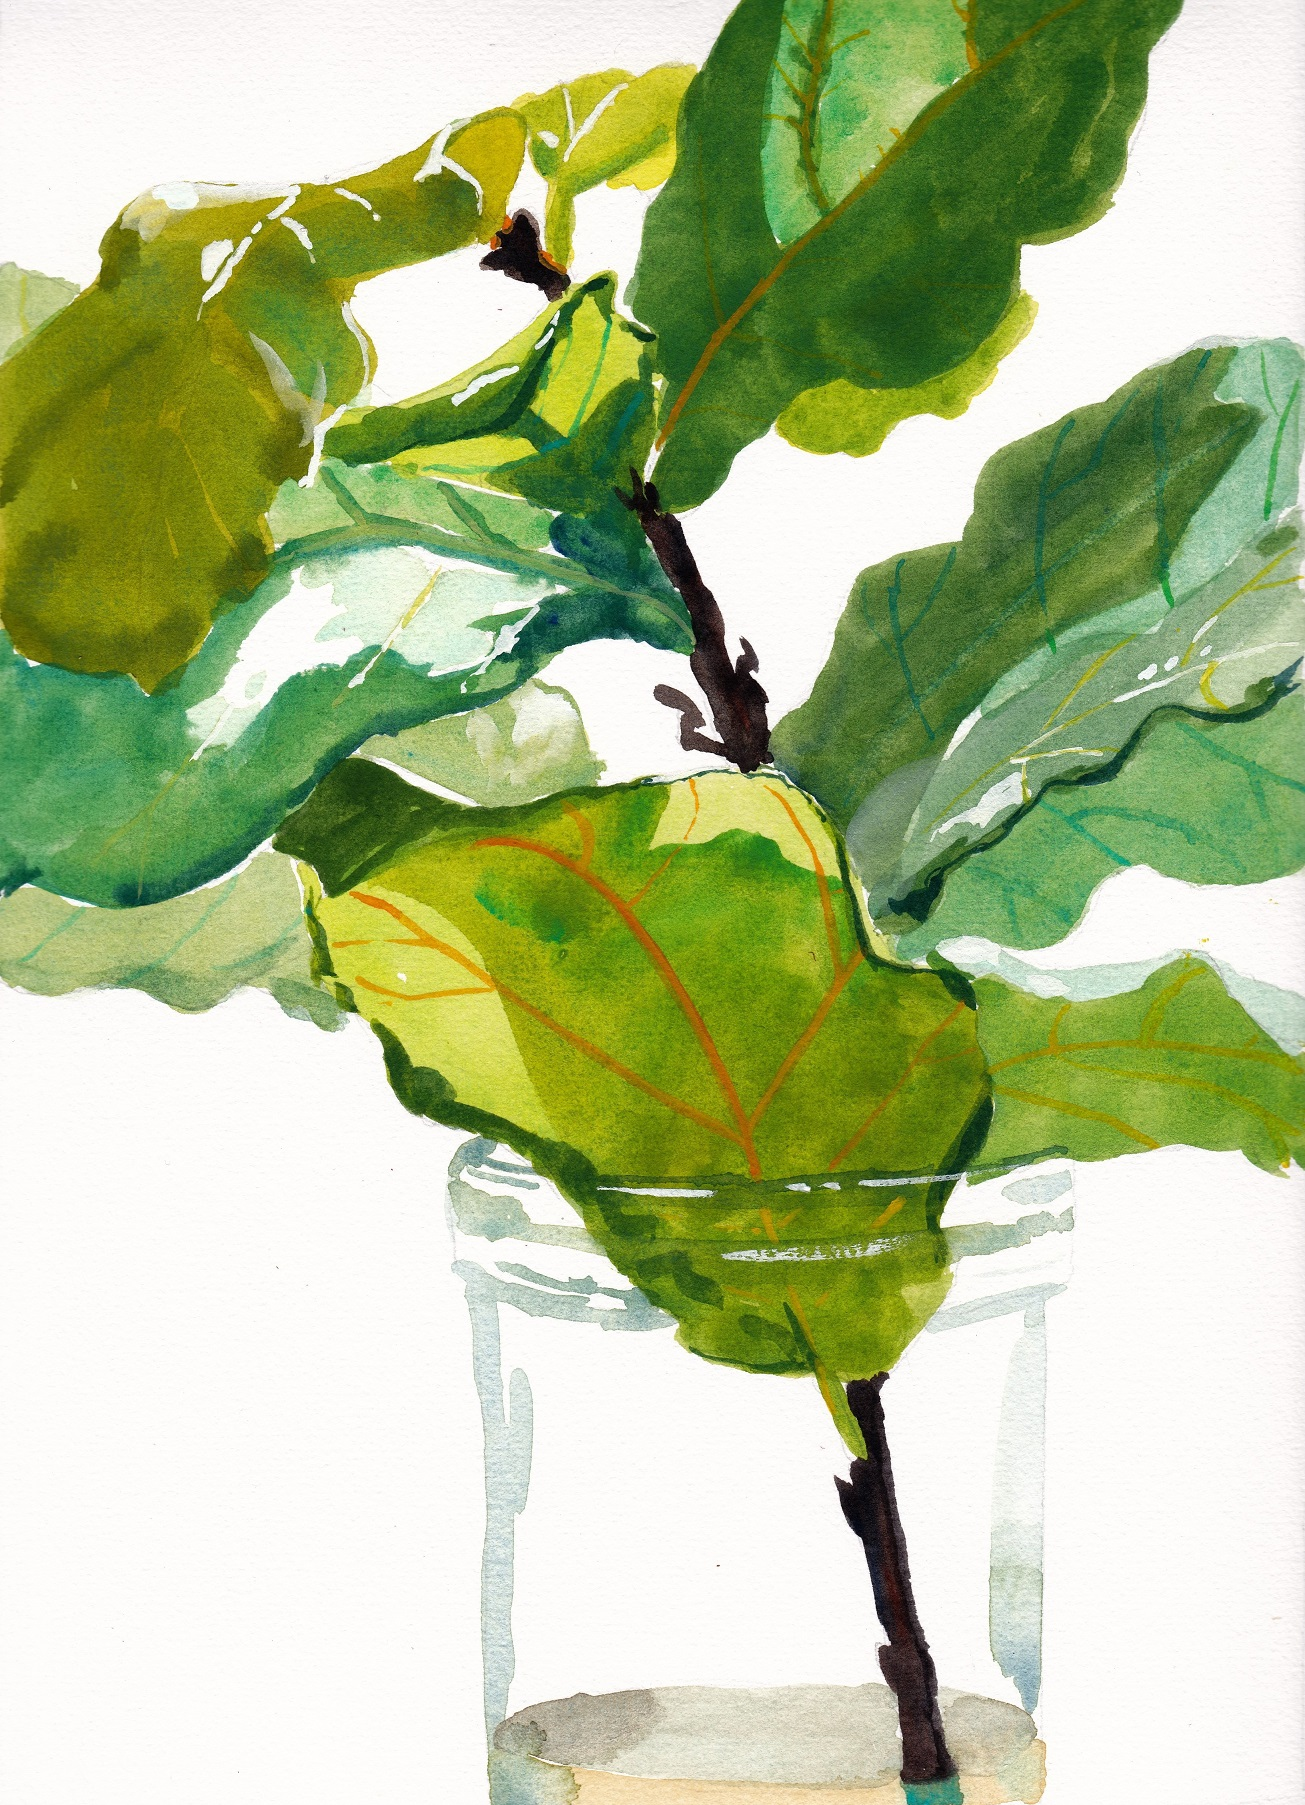 SOLD Small original watercolour painting of fiddle leaf fig branch in glass vase